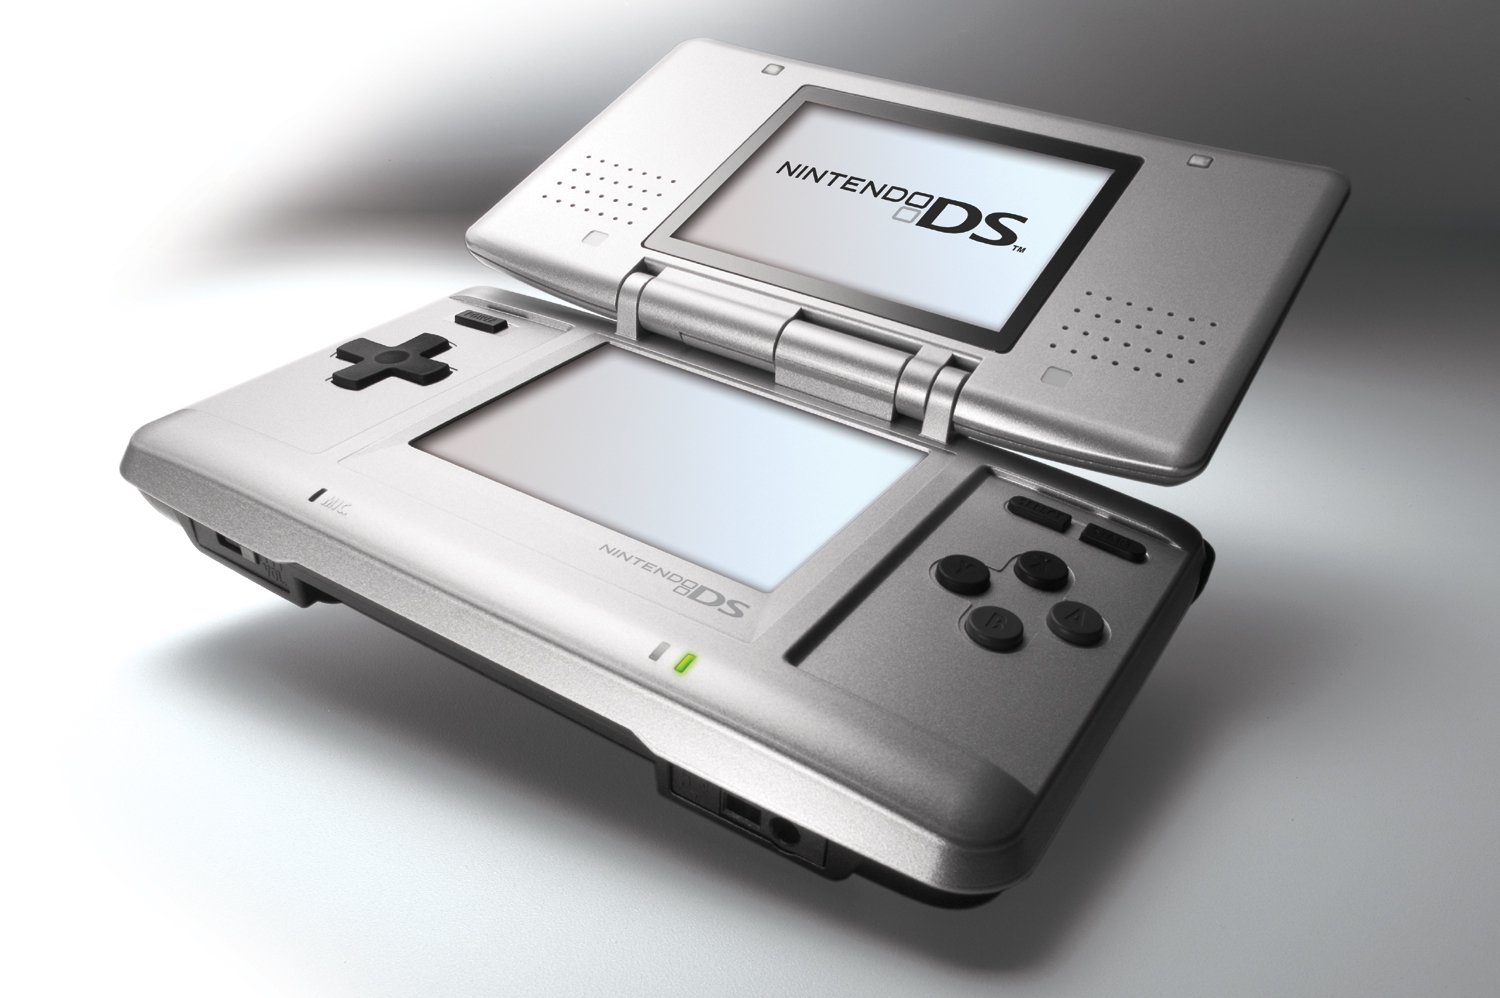 Court dismisses lawsuit against Nintendo after patents invalidated